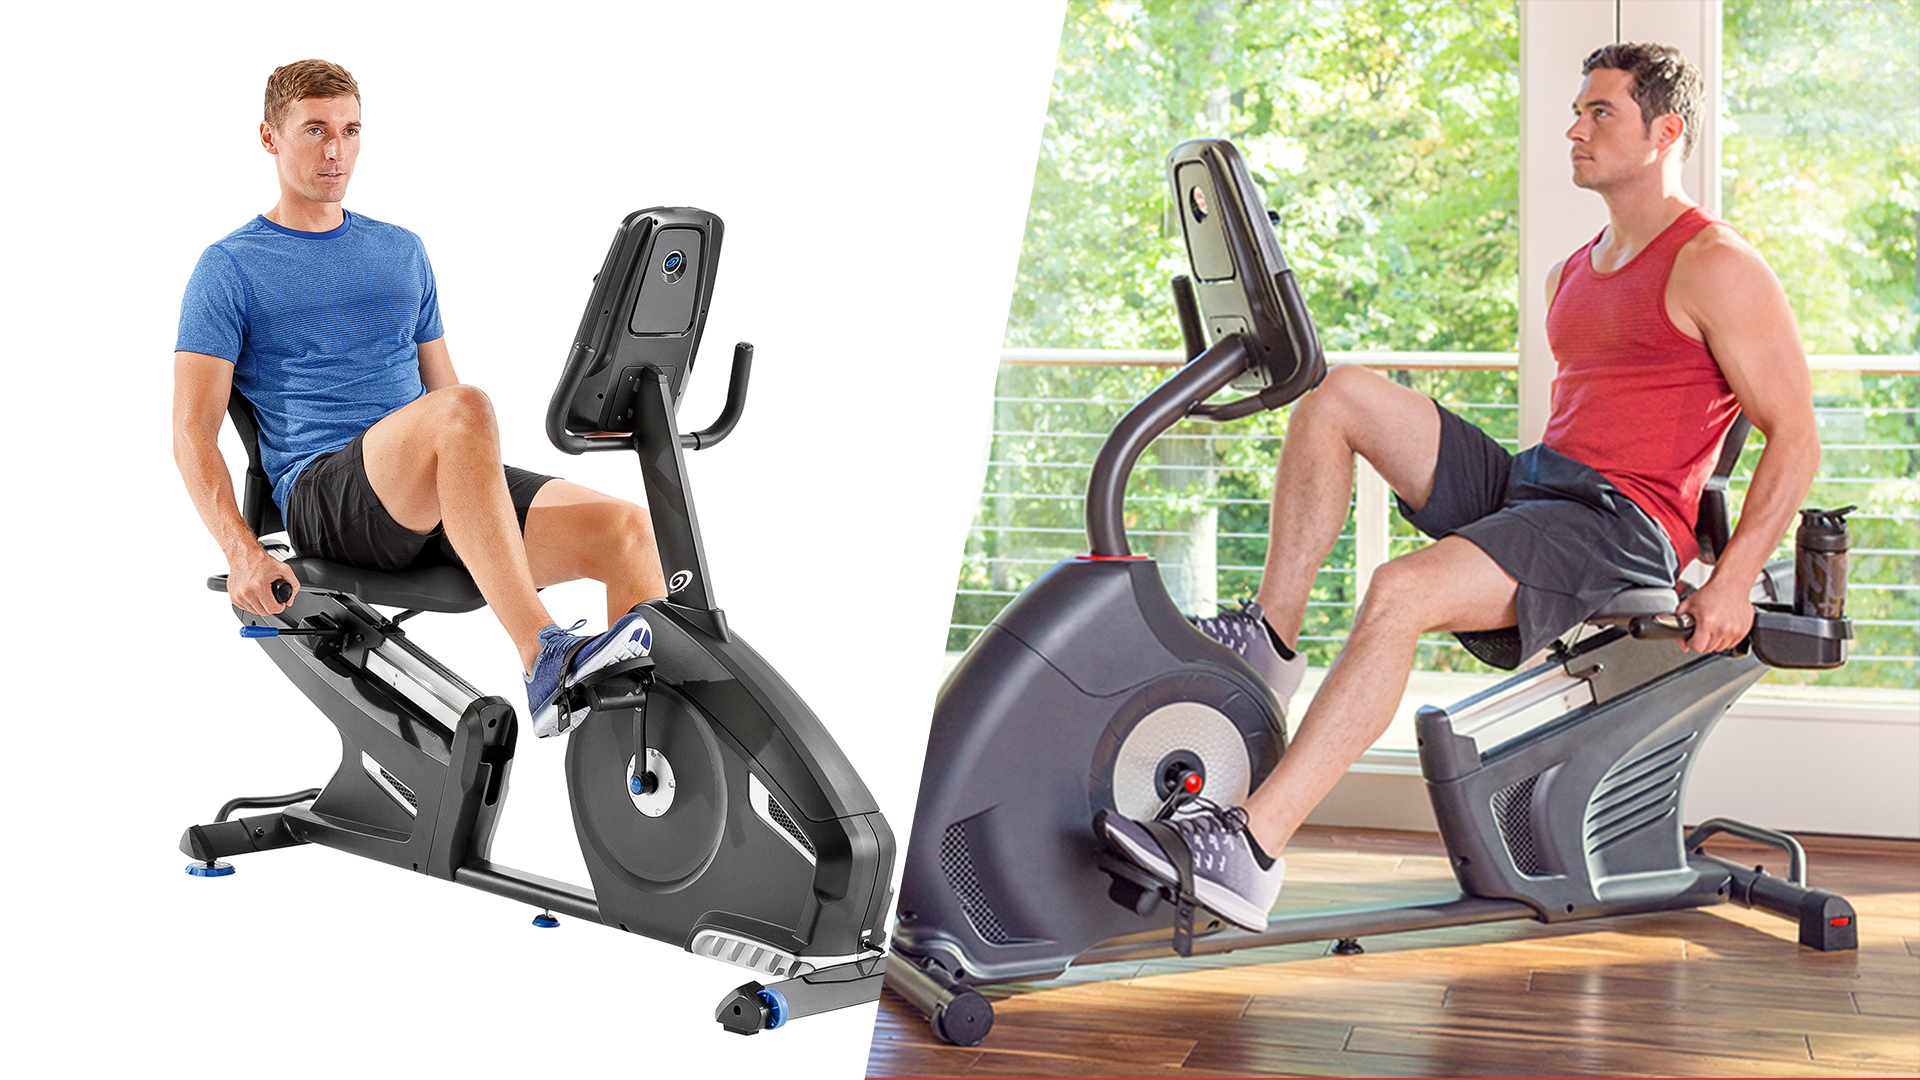 which is a better recumbent bike The Schwinn 270 or Nautilus R616